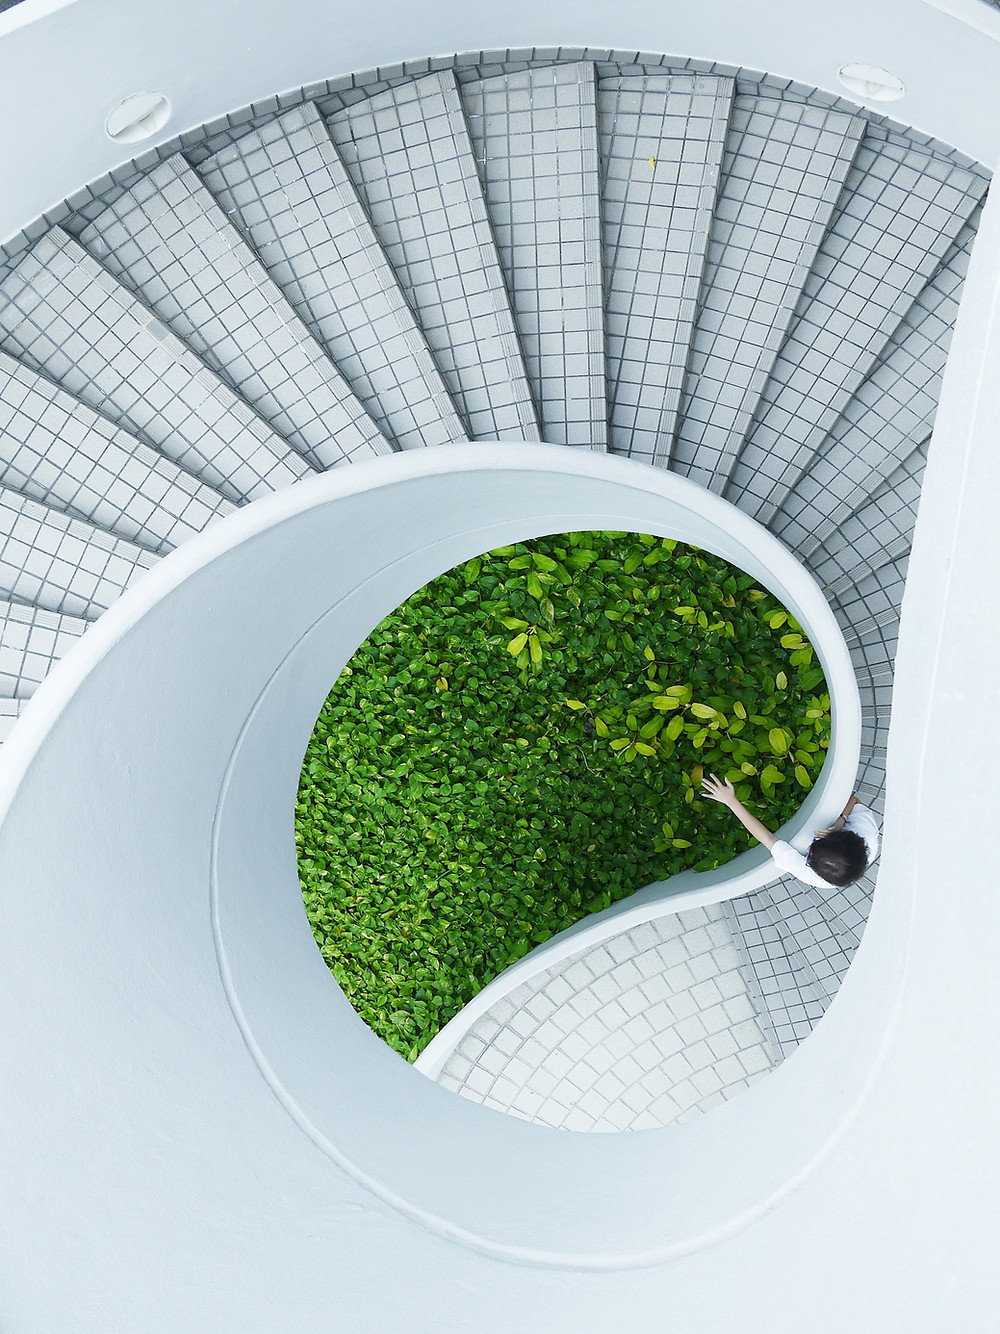 A spiral staircase with leaves